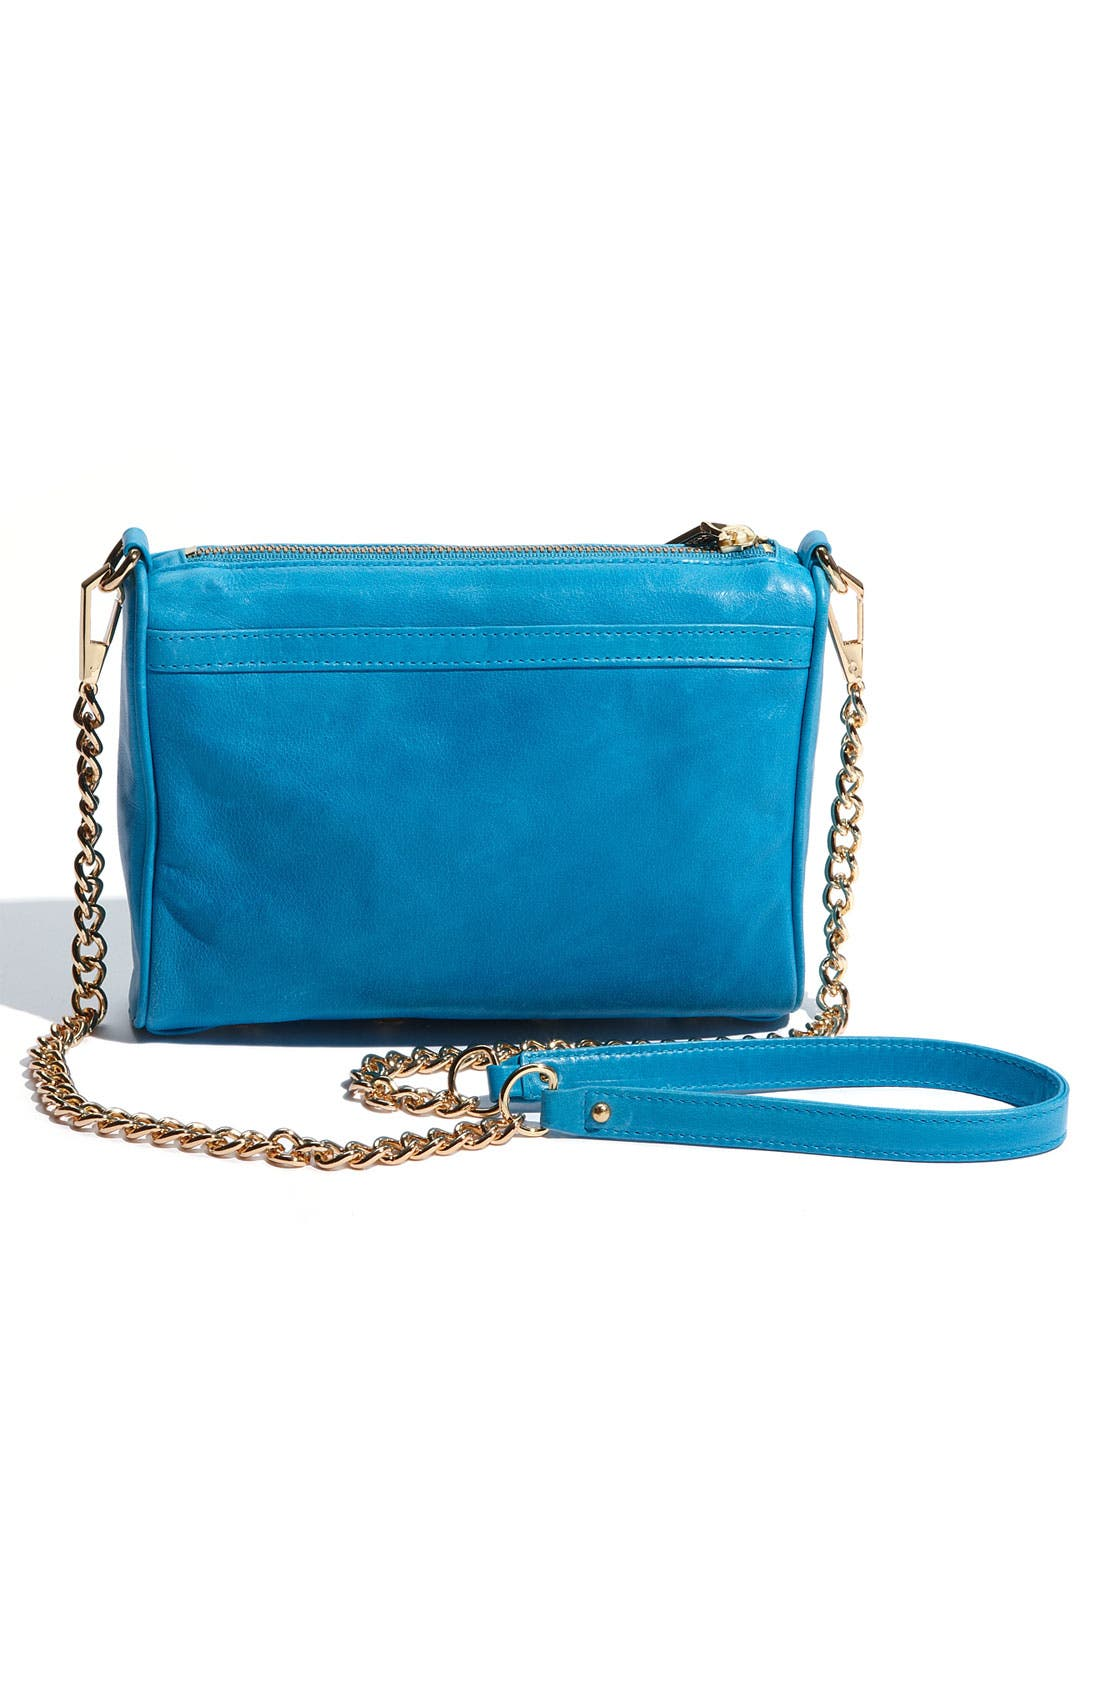 'Mini MAC' Croc Embossed Convertible Crossbody Bag,                             Alternate thumbnail 23, color,